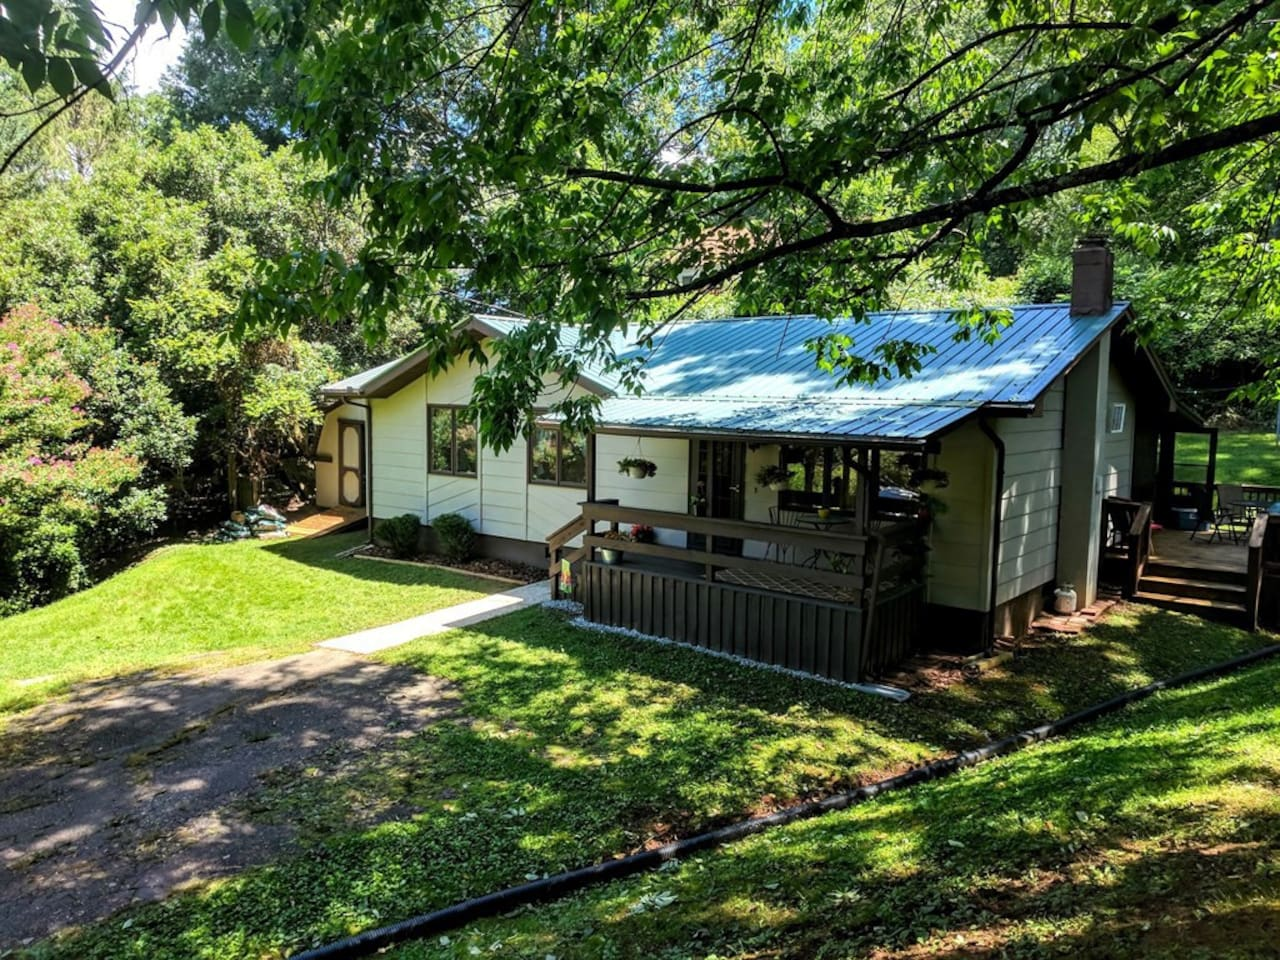 Private, quiet home right in Sylva. The home has a small covered front porch and large screen porch in the back. There is also a side deck where you can grill when the weather is right!